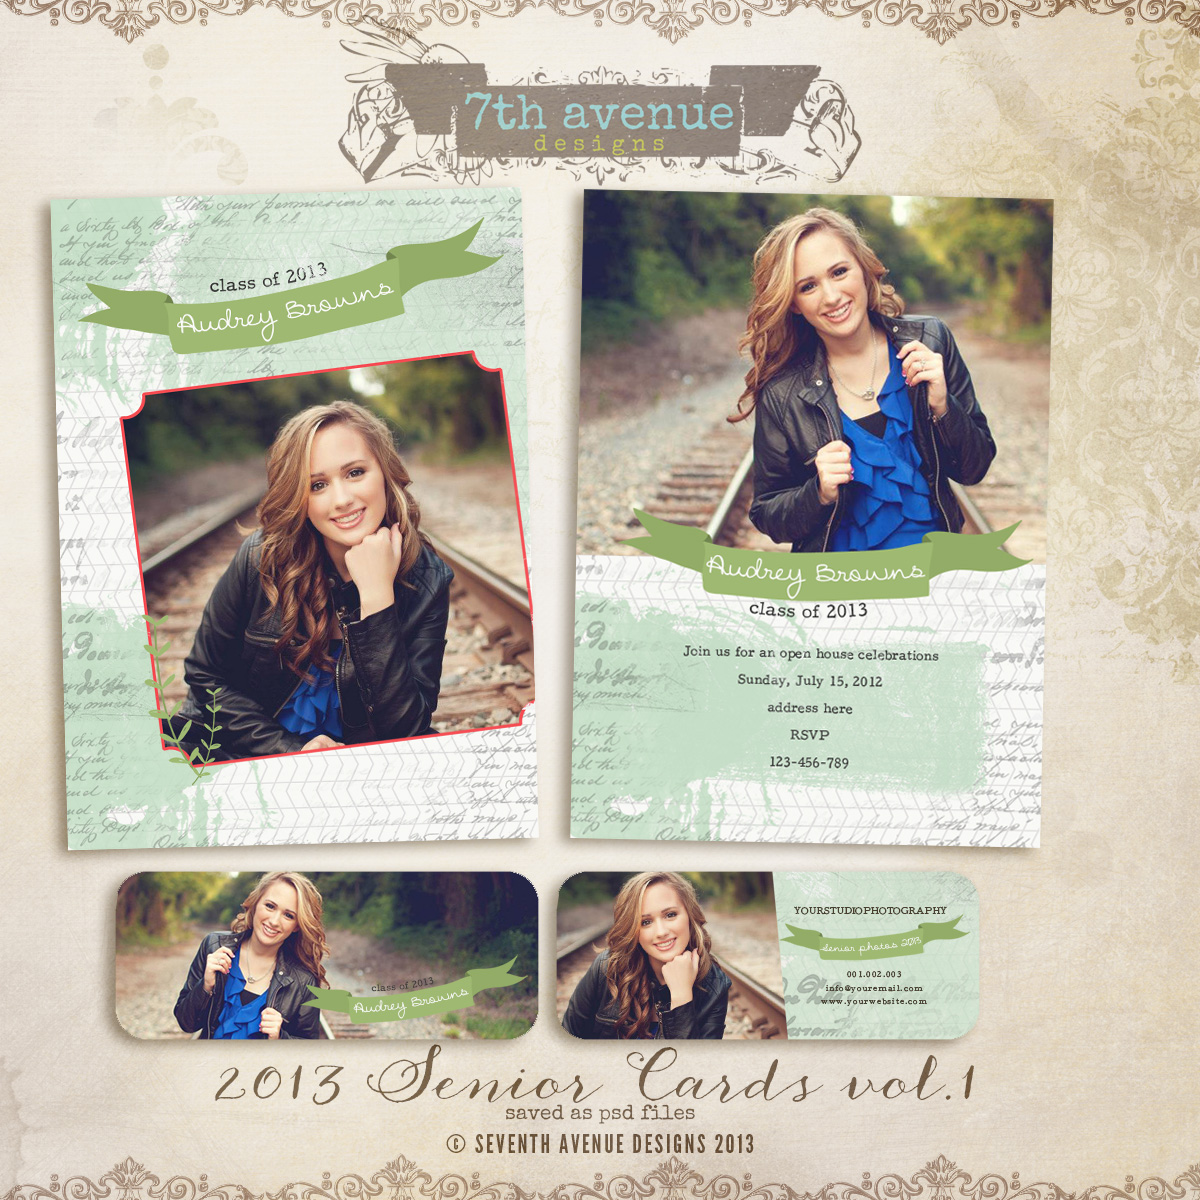 2013 Senior Card Templates no.1